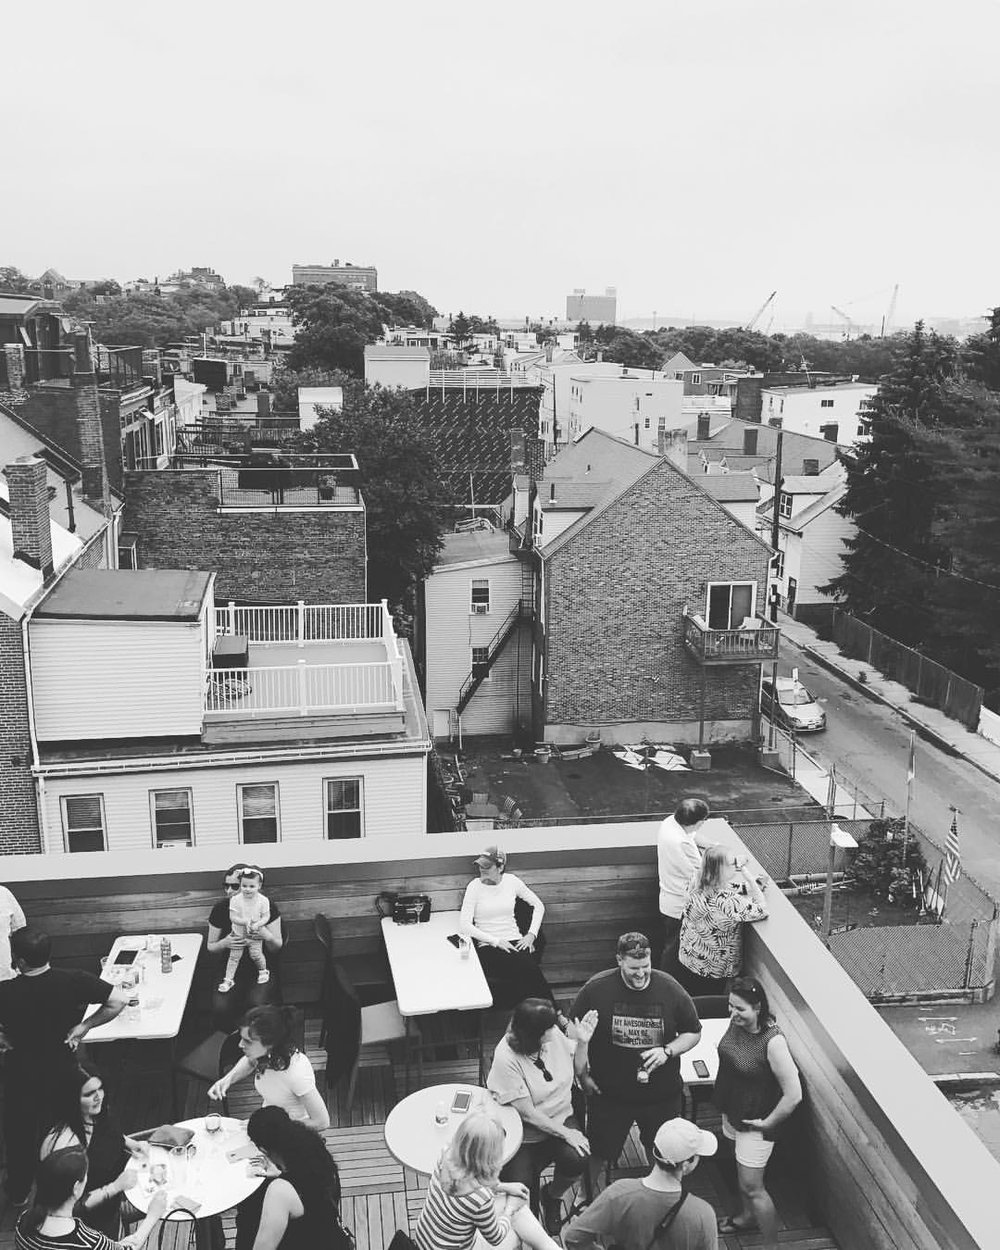 RoofDeckDiningEastBoston